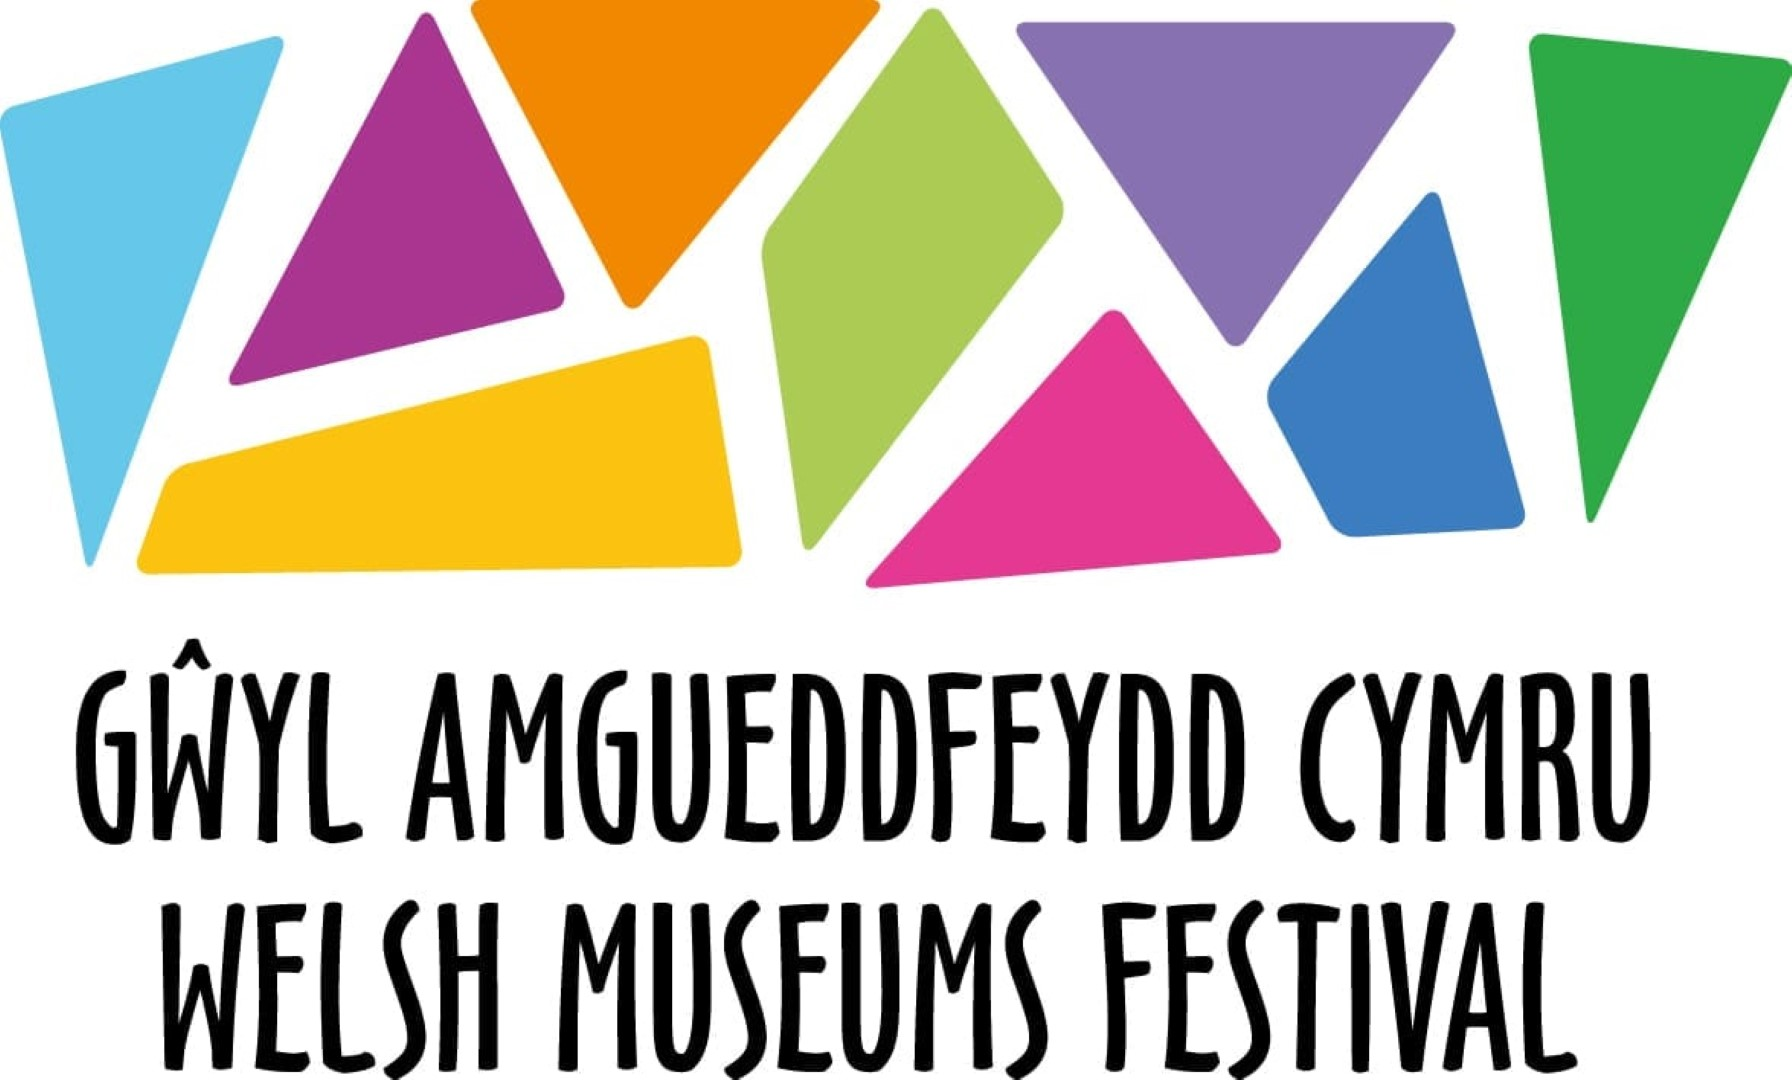 Welsh Museums Festival